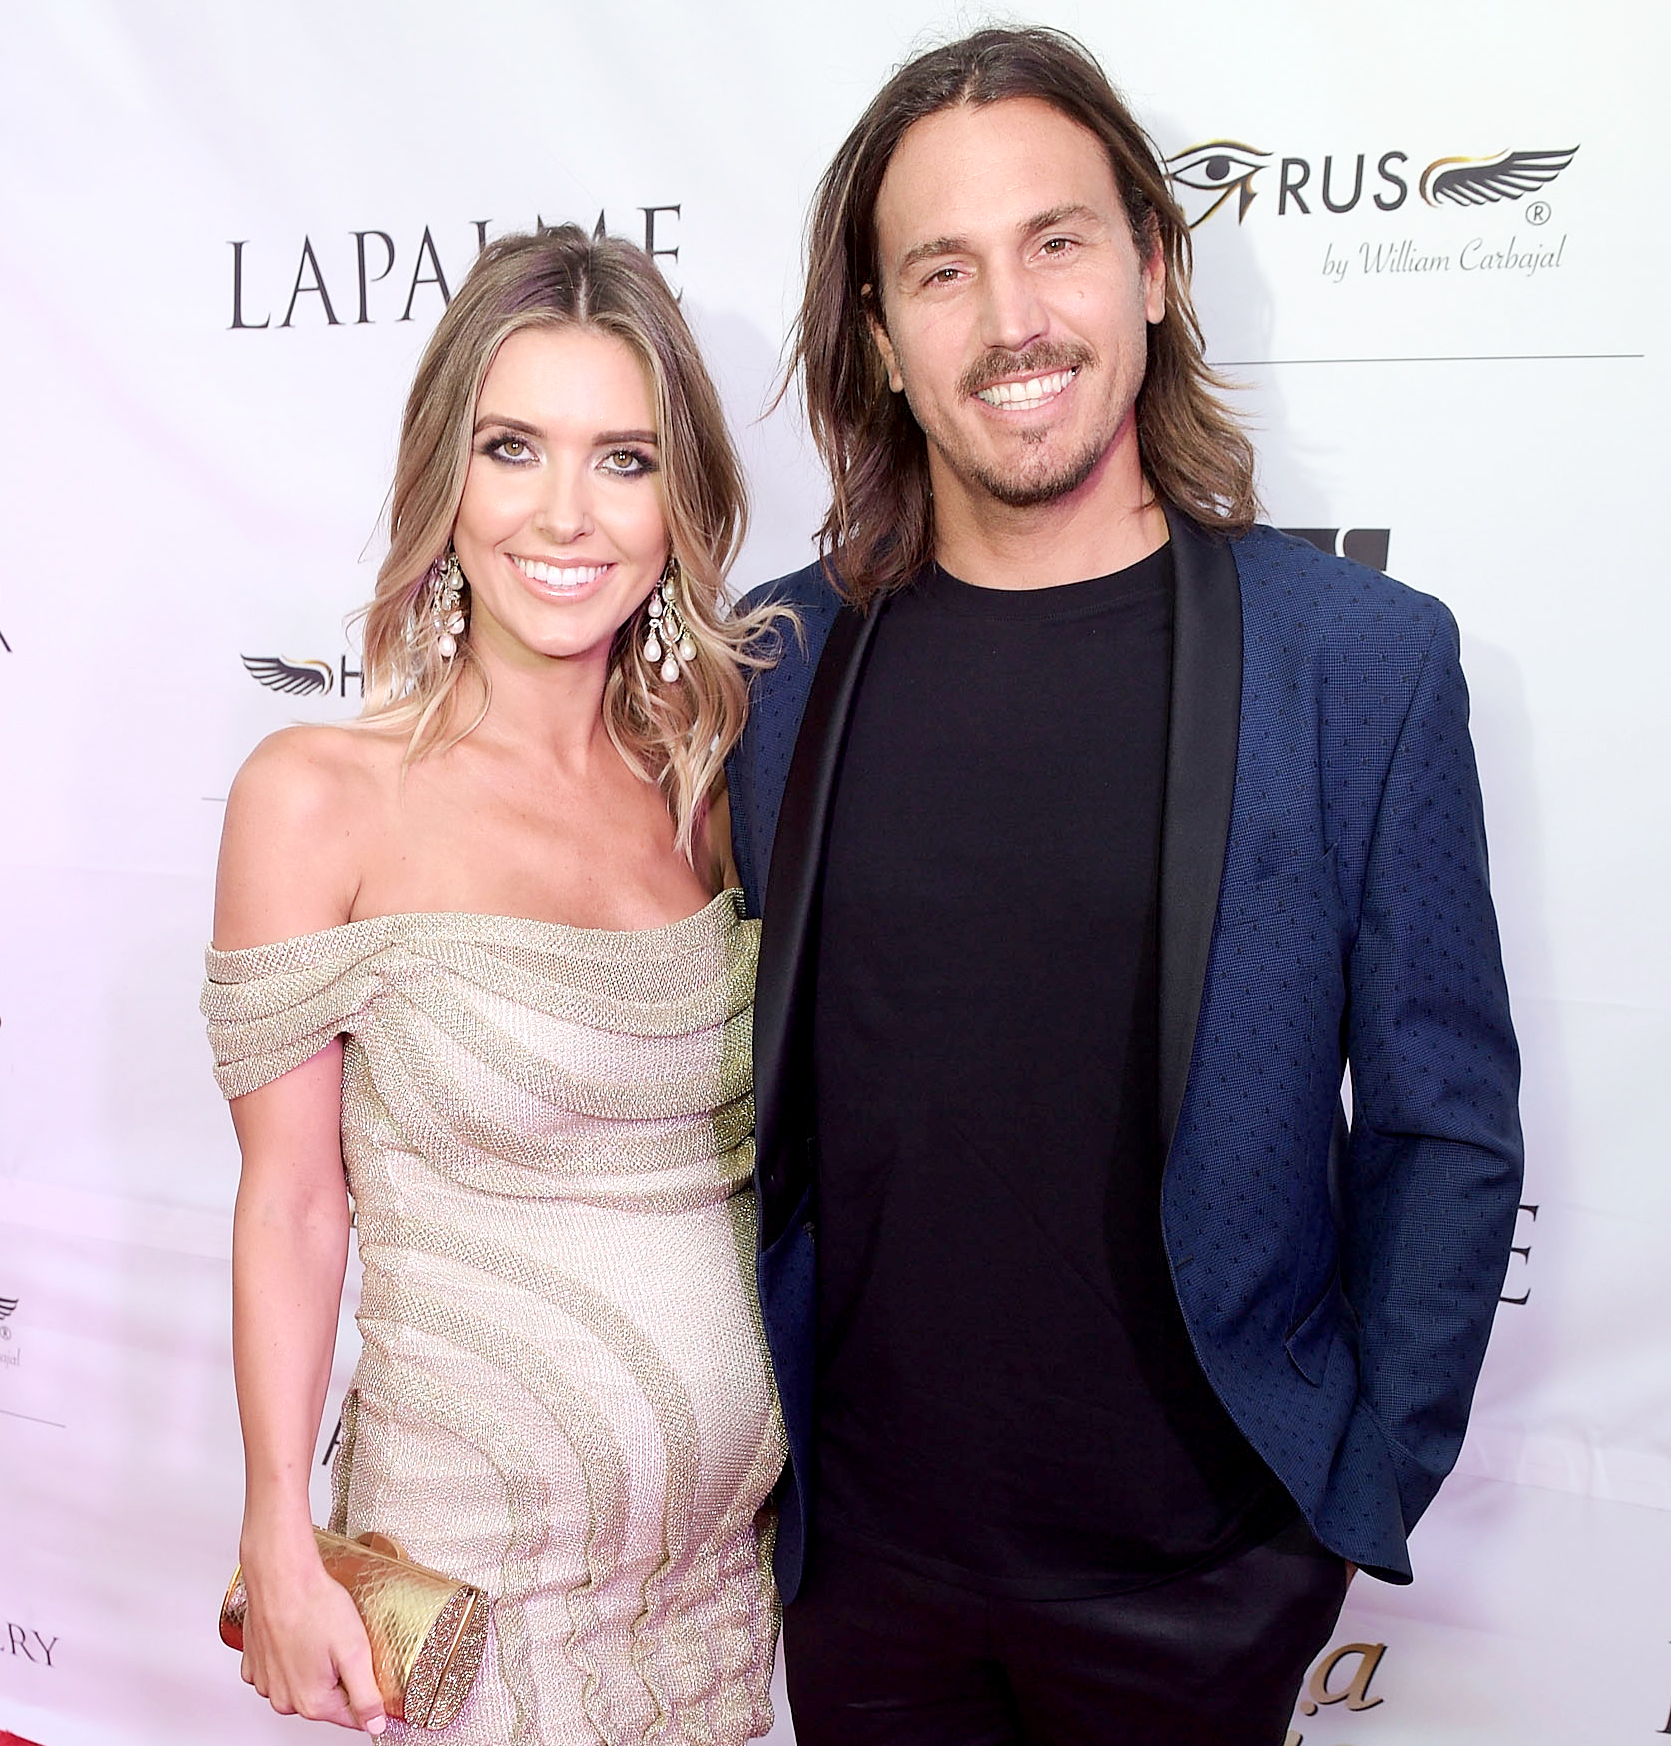 Who is audrina dating august 2012